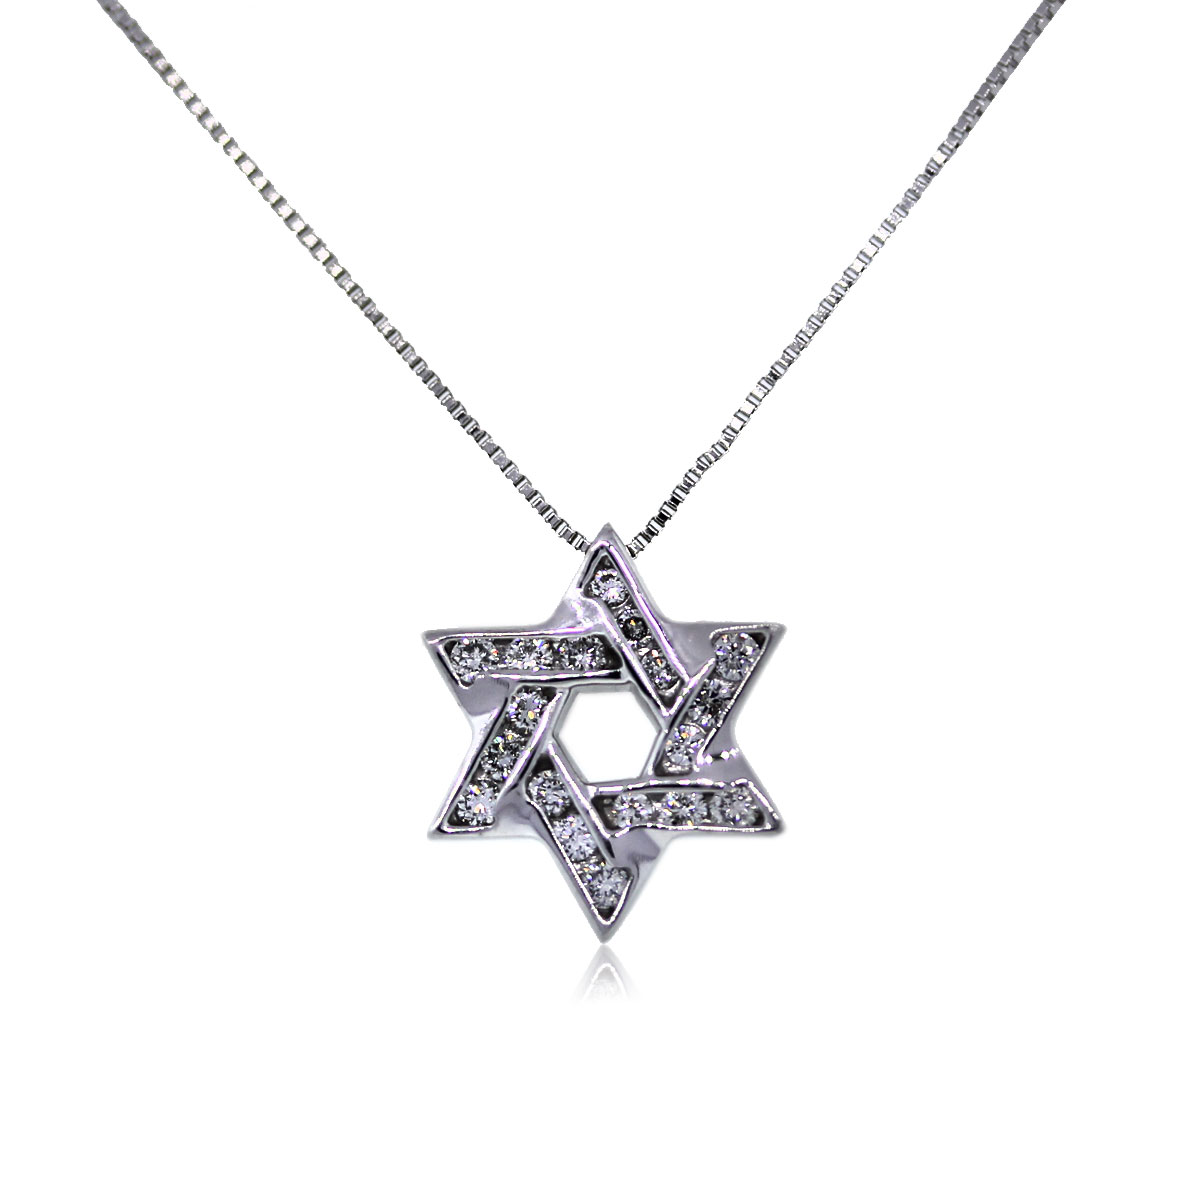 You are Viewing this Stunning Diamond Star of David Necklace